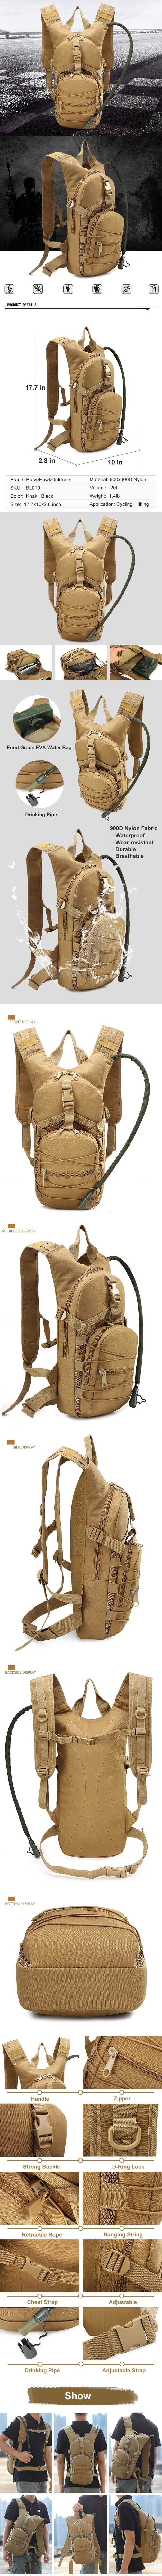 Tactical Hydration Backpack with Water Bag